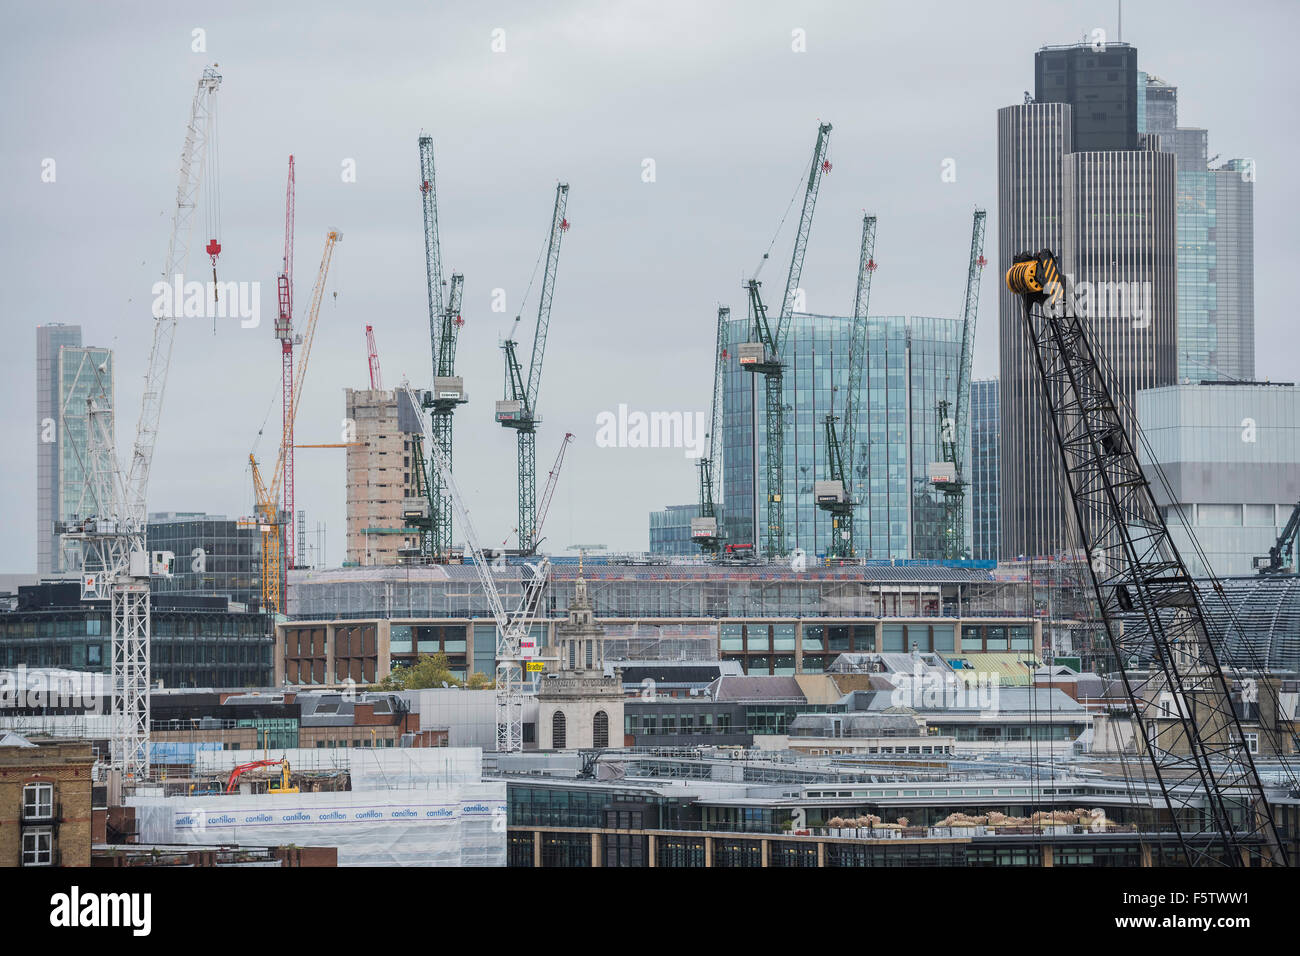 London, UK. 09th Nov, 2015. The City is a forest of cranes, indicating that construction work continues apace around Stock Photo